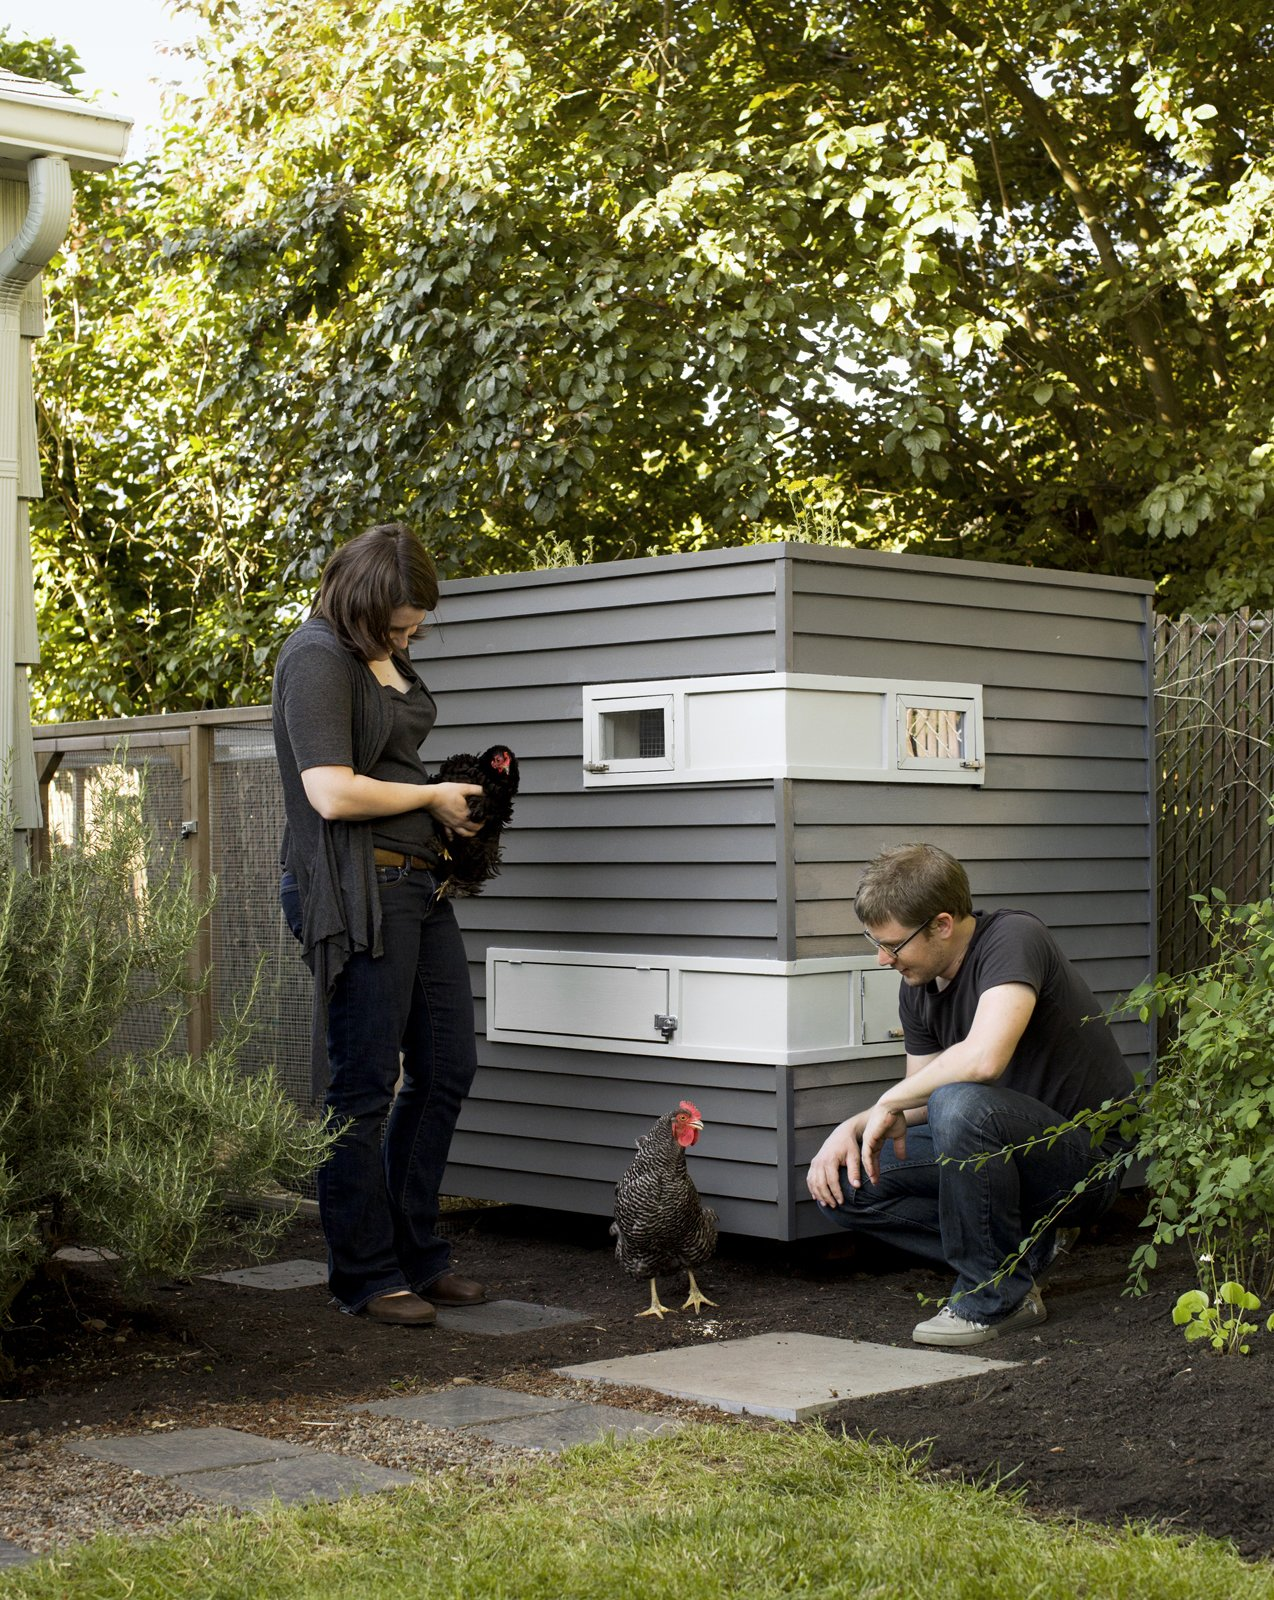 Snyder and Martin's move brought about an entirely different lifestyle--one that involved a house, a yard, and for Snyder, the chance to launch his own firm, Mitchell Snyder Architecture, after first acquainting himself to Portland, Oregon, as a designer at Scott Edwards Architecture. His first project on his own: a chicken coop for the couple's new feathery friends.  Photo 1 of 4 in The Dos and Don'ts of Building Your Own Chicken Coop from Coop Dreams